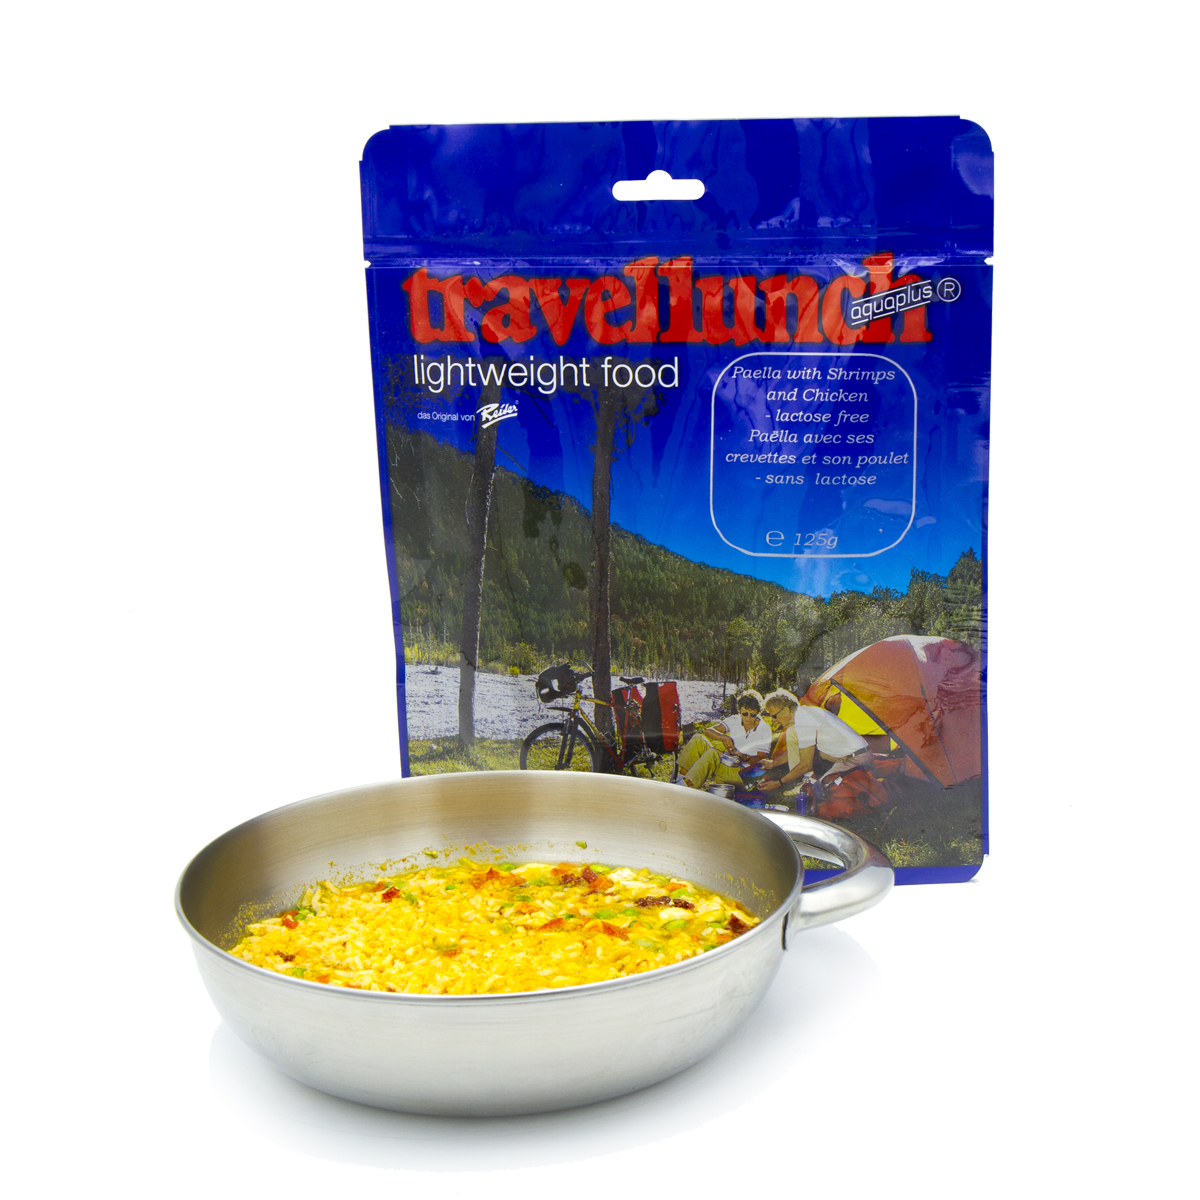 51126_travellunch-paella_w_shrimps_lac_free